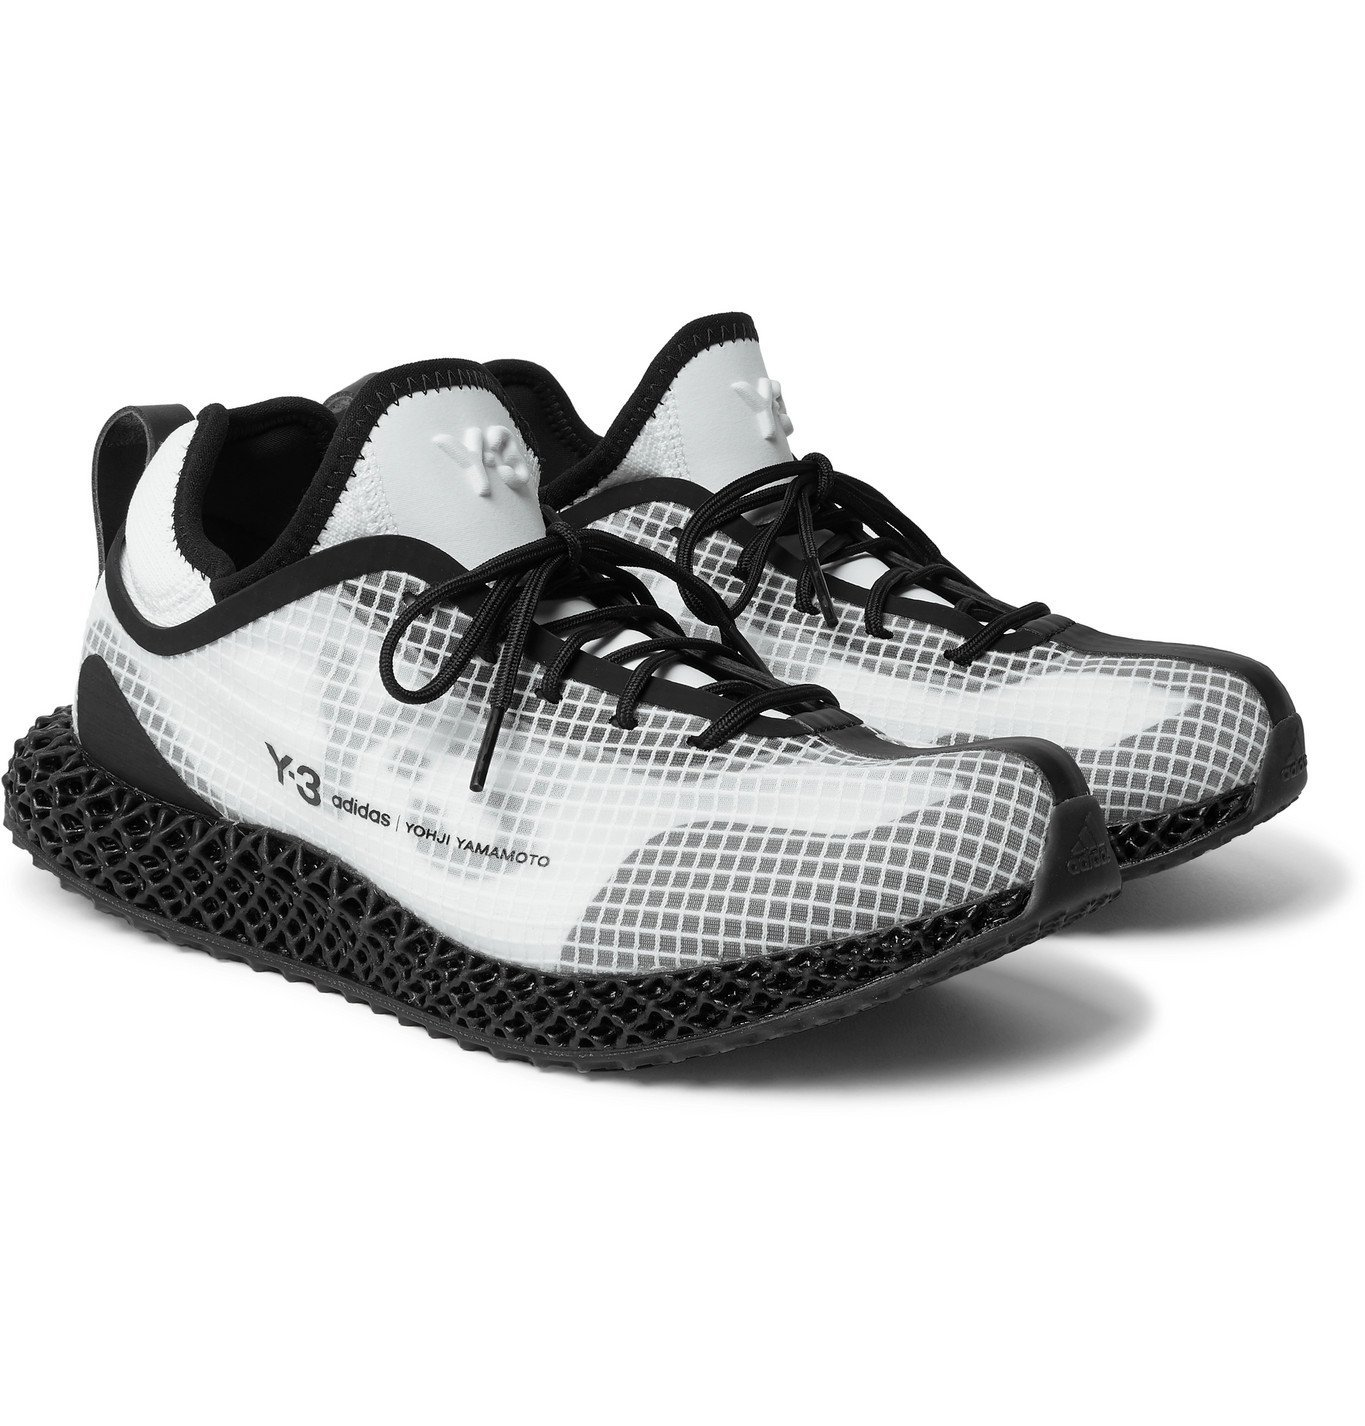 Photo: Y-3 - Runner 4D IO Leather and Neoprene-Trimmed Ripstop and Primeknit Sneakers - White